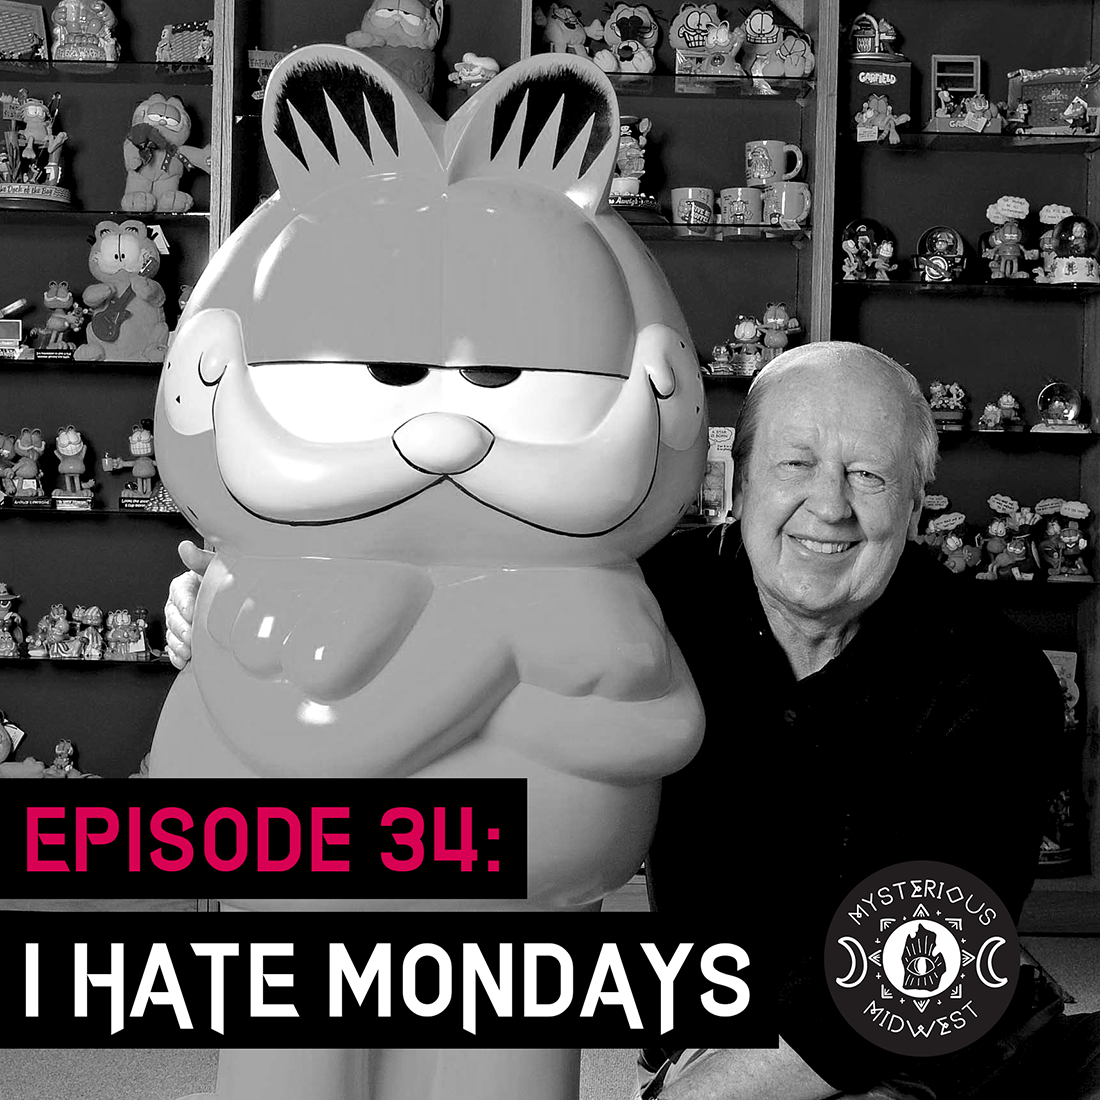 Episode 34: I Hate Mondays